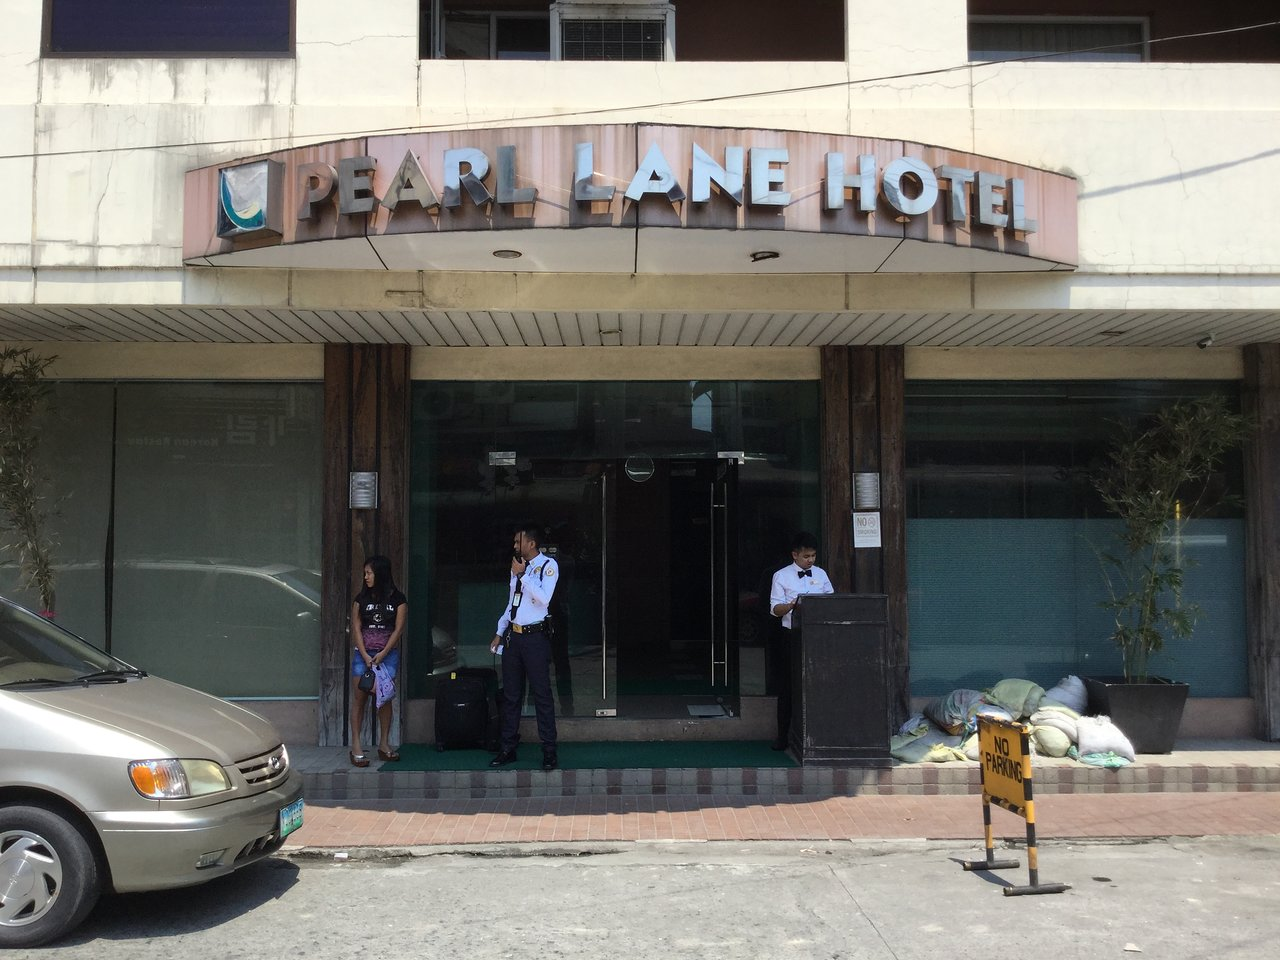 pearl lane hotel c 5 2 c 40 updated prices reviews photos rh tripadvisor ca